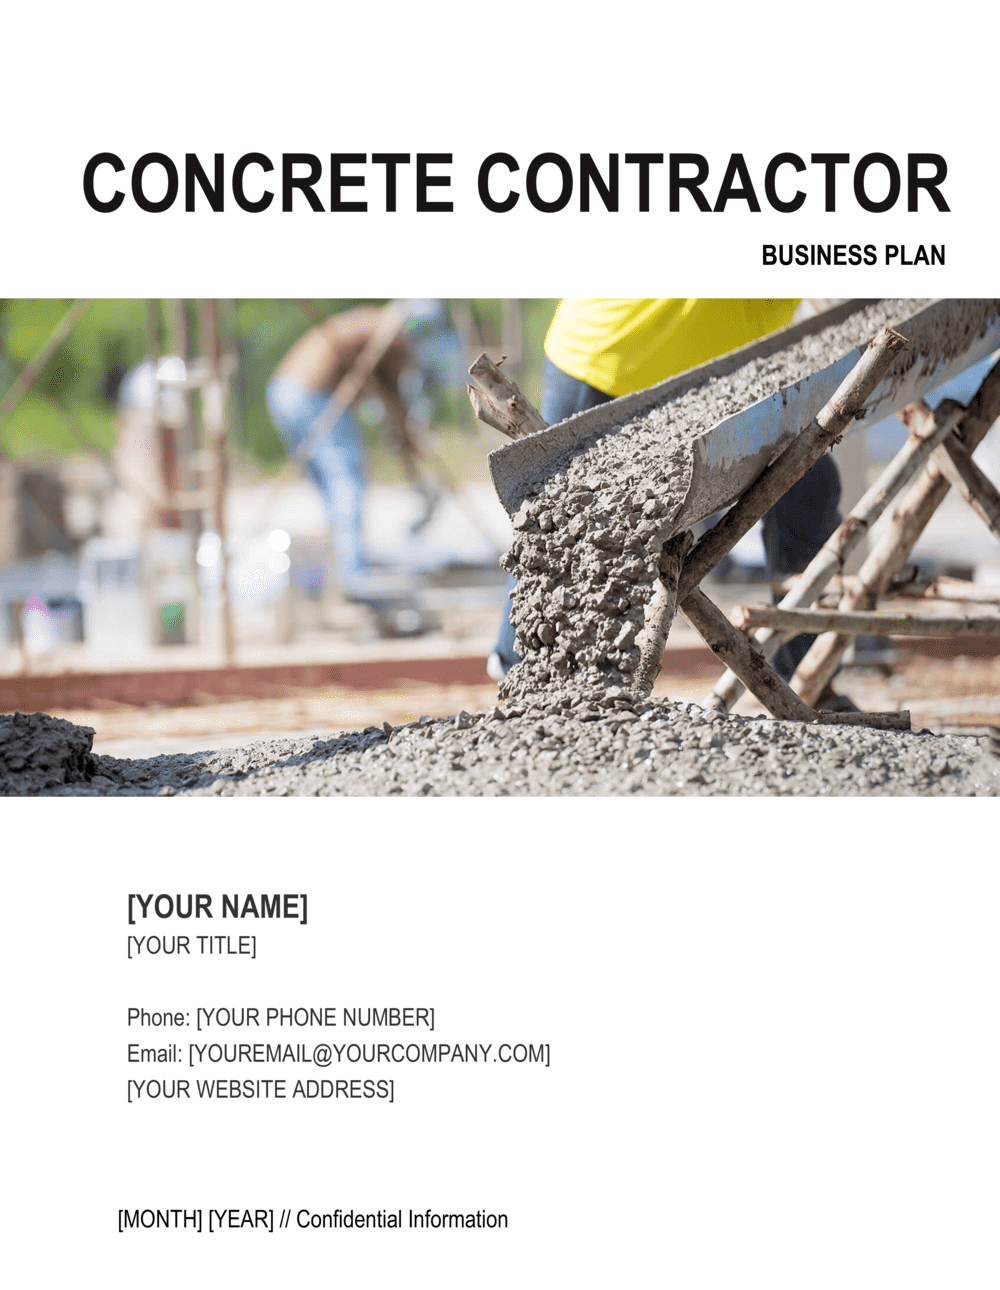 Business-in-a-Box's Concrete Contractor Business Plan Template